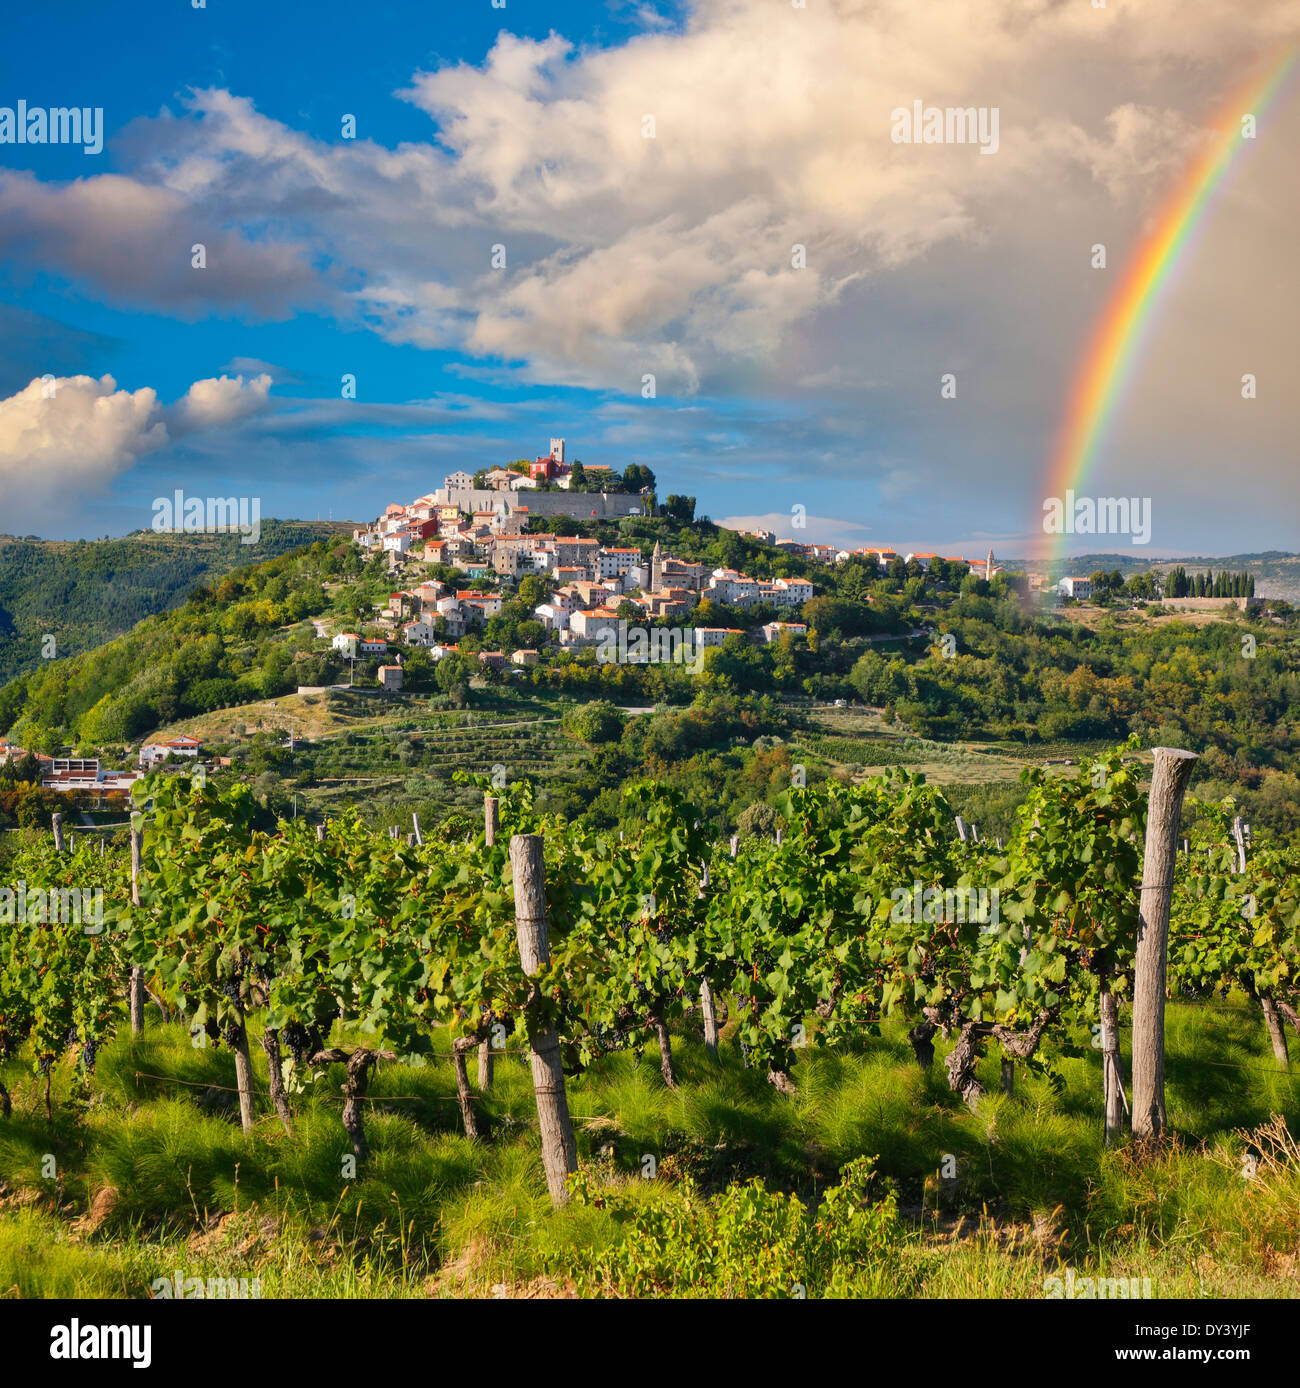 Motovun on the hill after rain with rainbow on the sky, Croatia - Stock Image